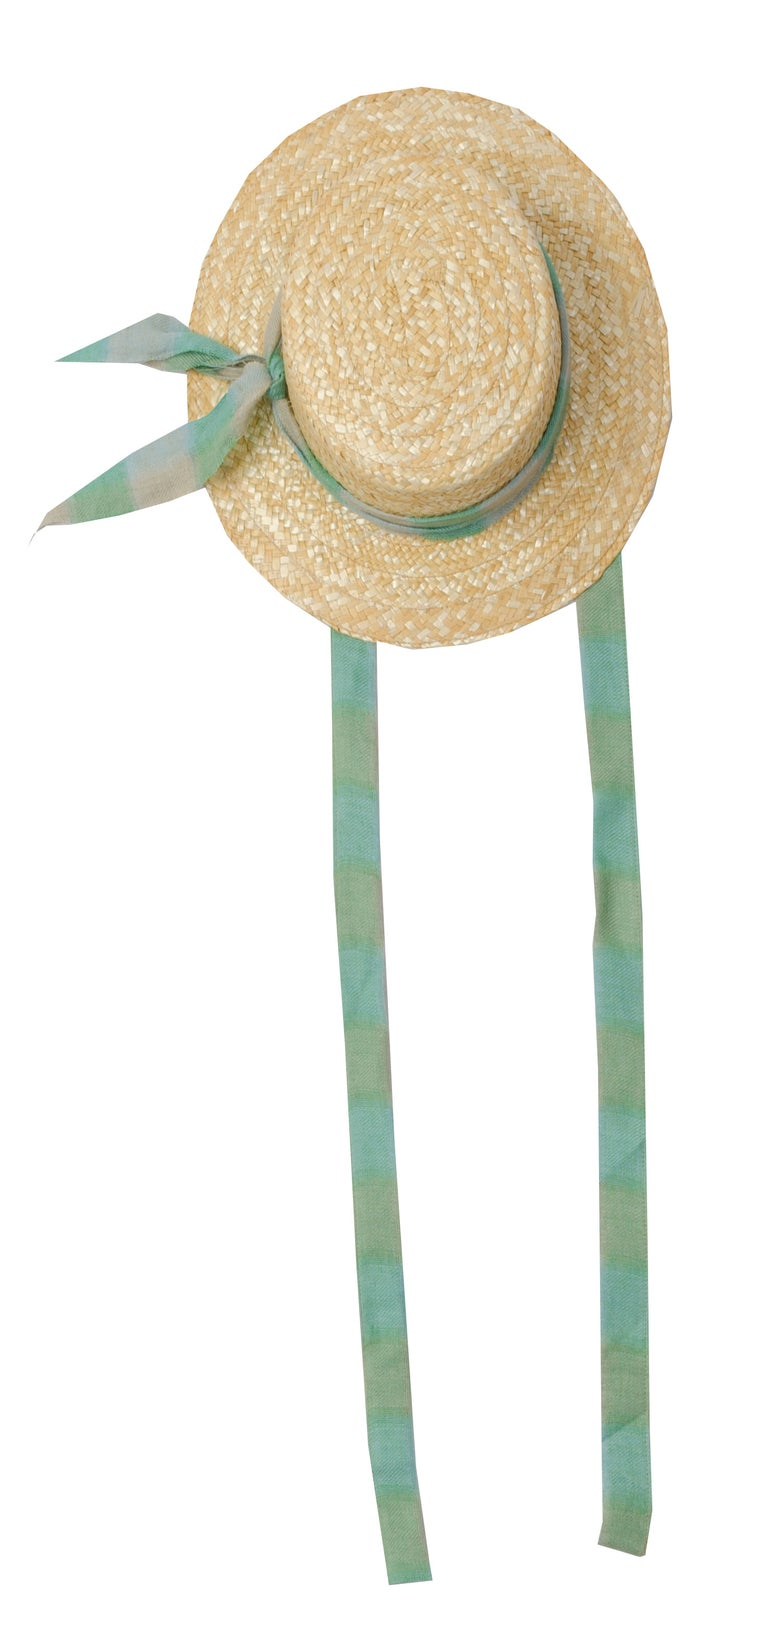 Image of STRAW HAT check